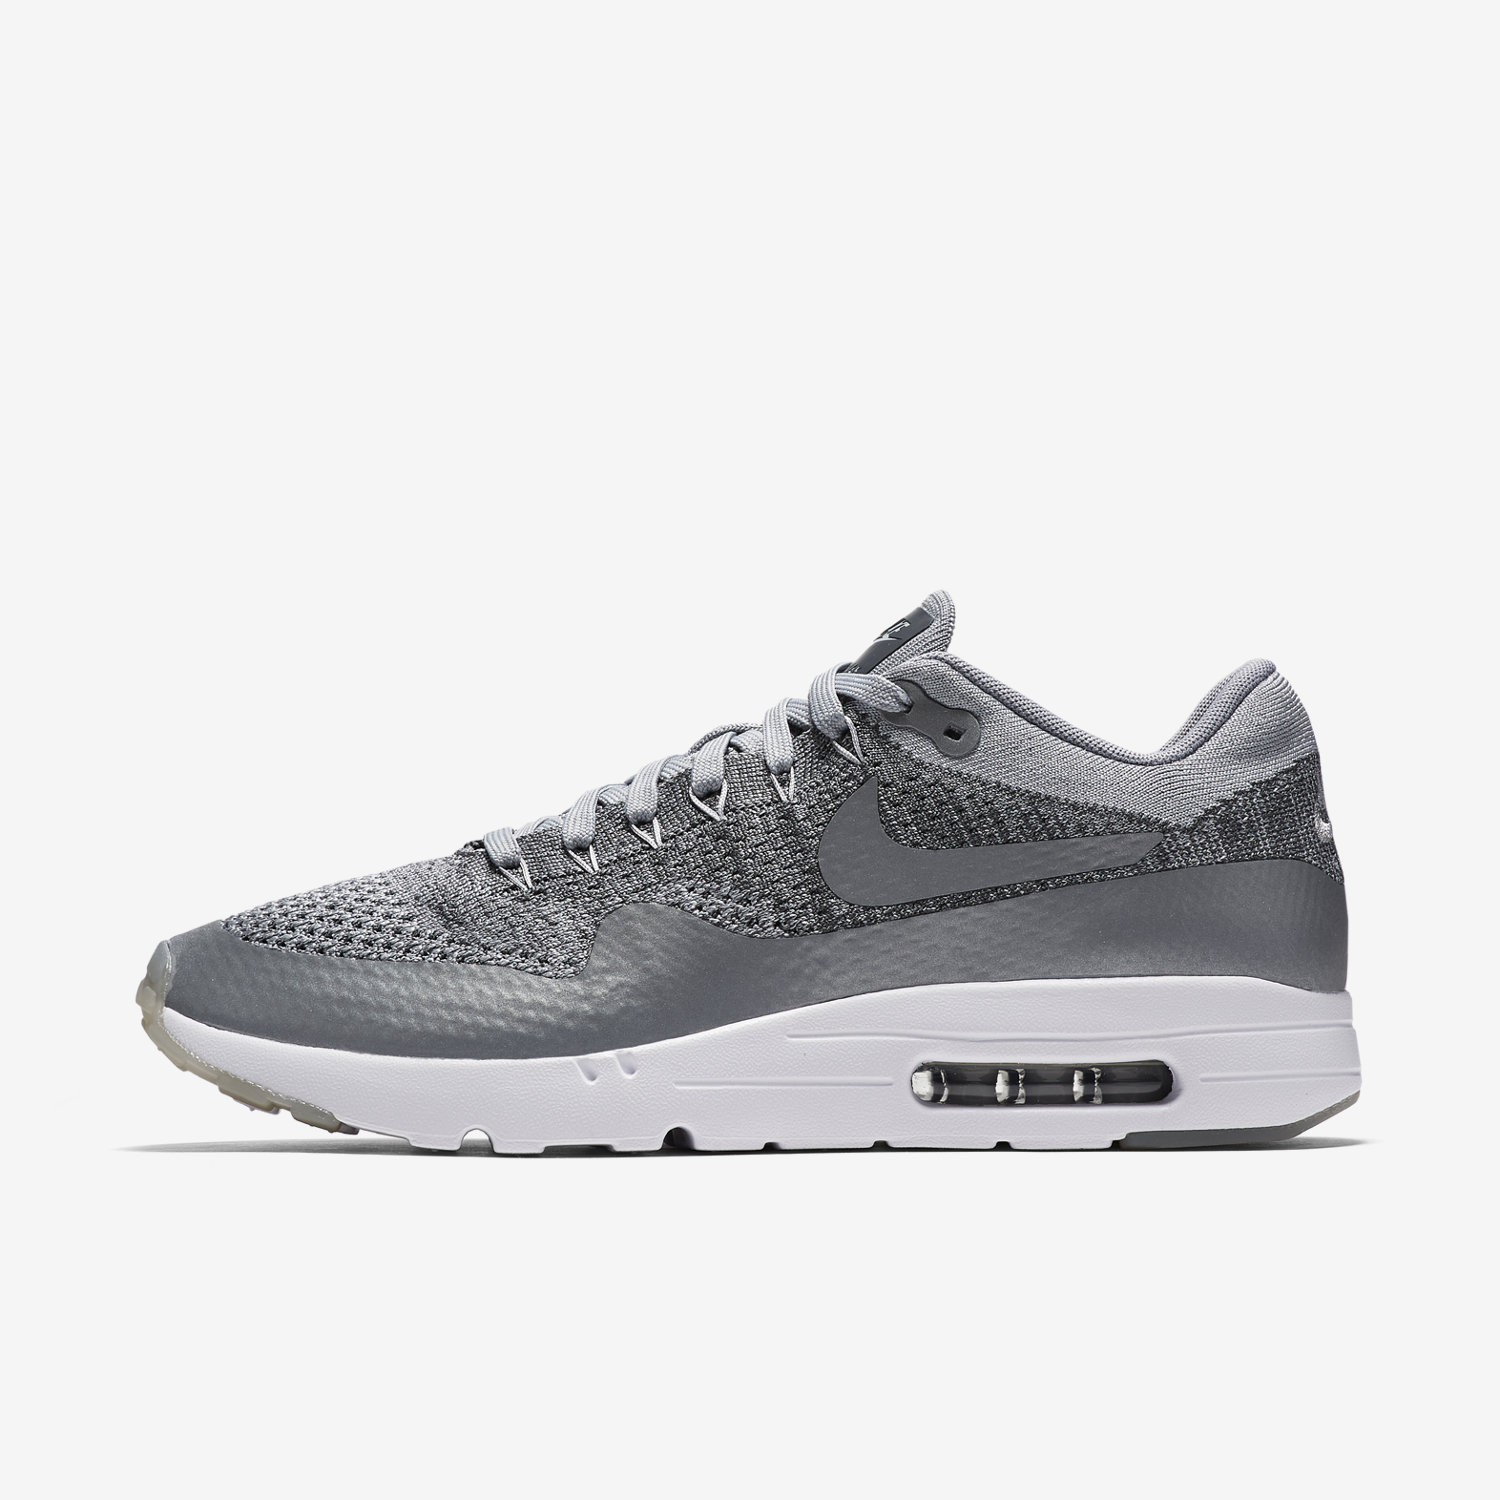 free shipping b3481 12f5d Cheap Nike AIR MAX 1 ESSENTIAL 42 47.5 NEW140 ultra zero tavas